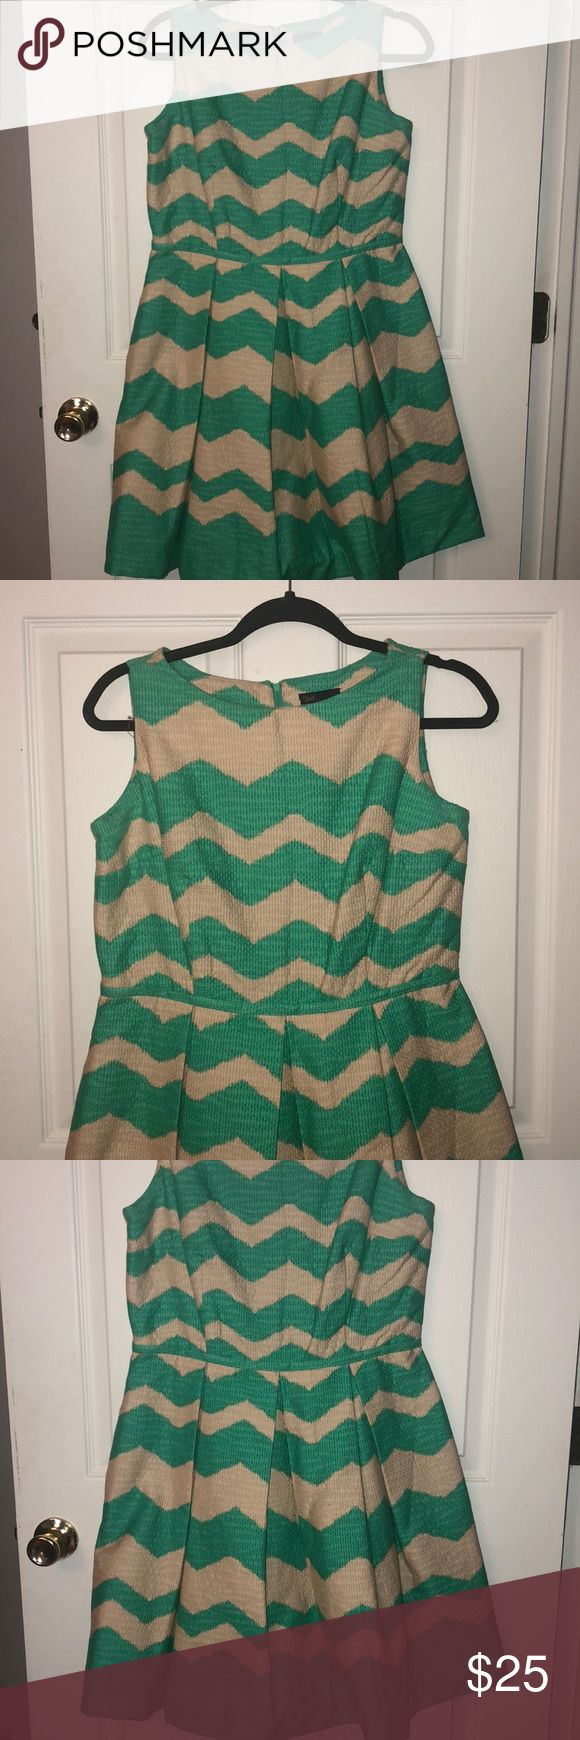 New Just Taylor Peplum Dress! Size 10 💕💕 Gorgeous chevron pattern dress with POCKETS!! Perfect for going out or a day at the office! Size 10 Just Taylor Dresses Midi